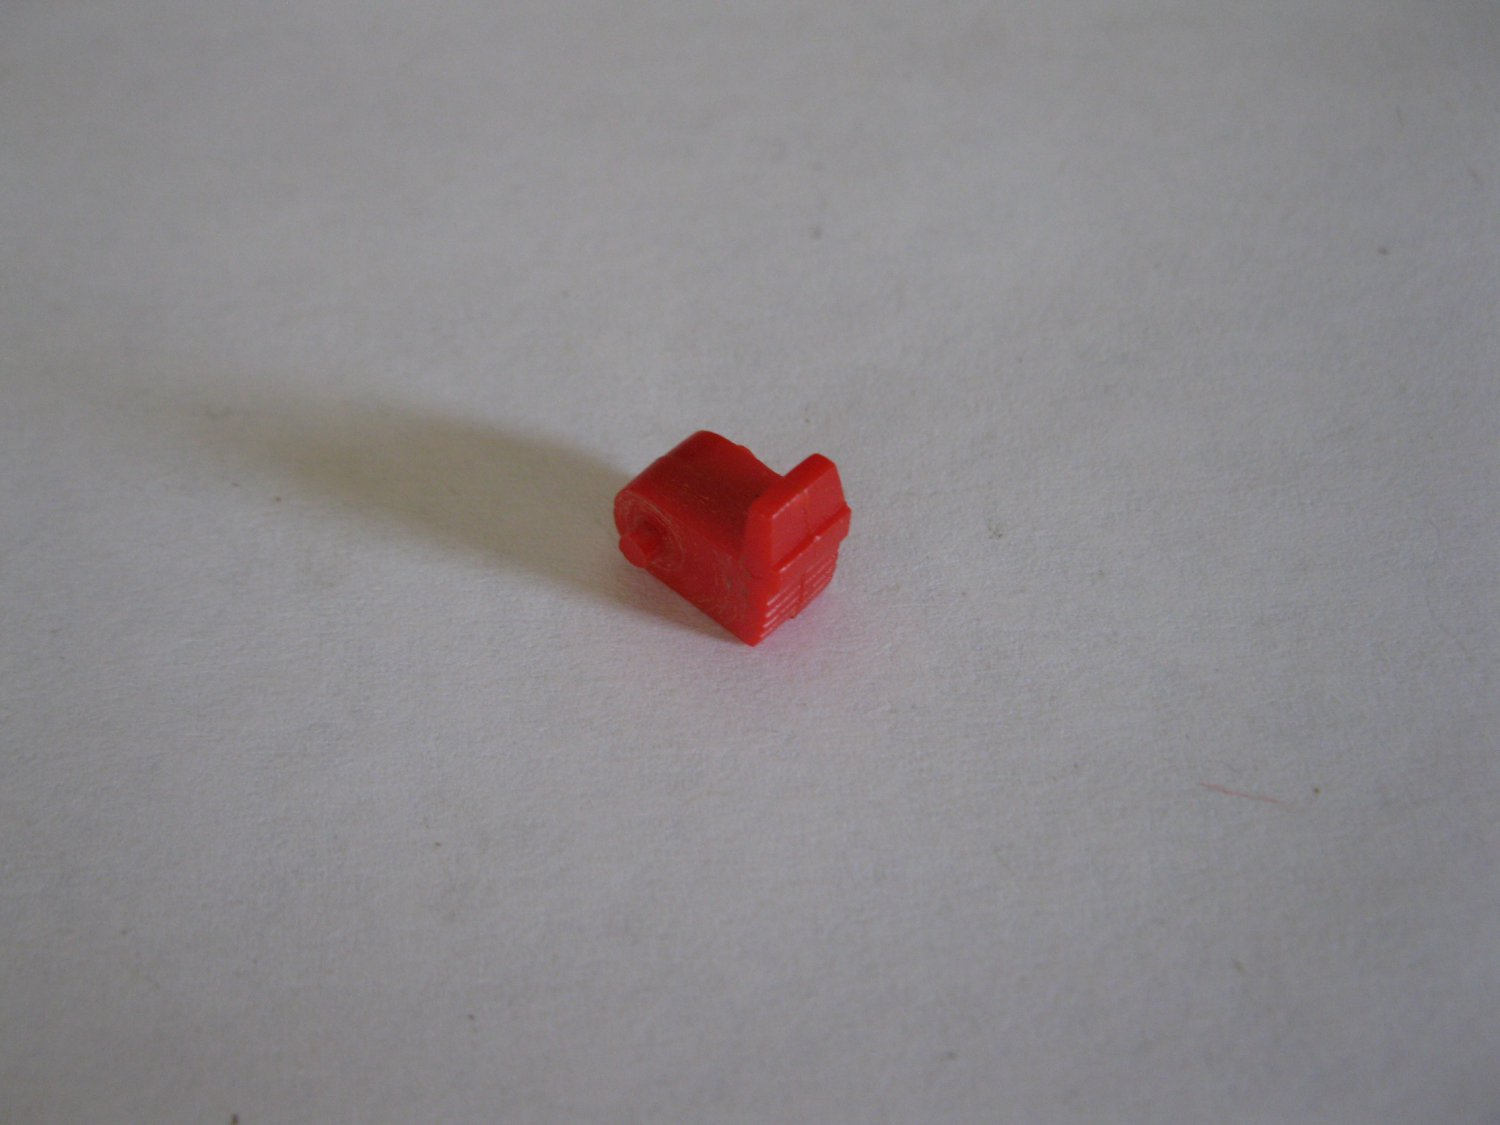 G1 Transformers Action figure part: 1984 Overdrive - Small Red Piece